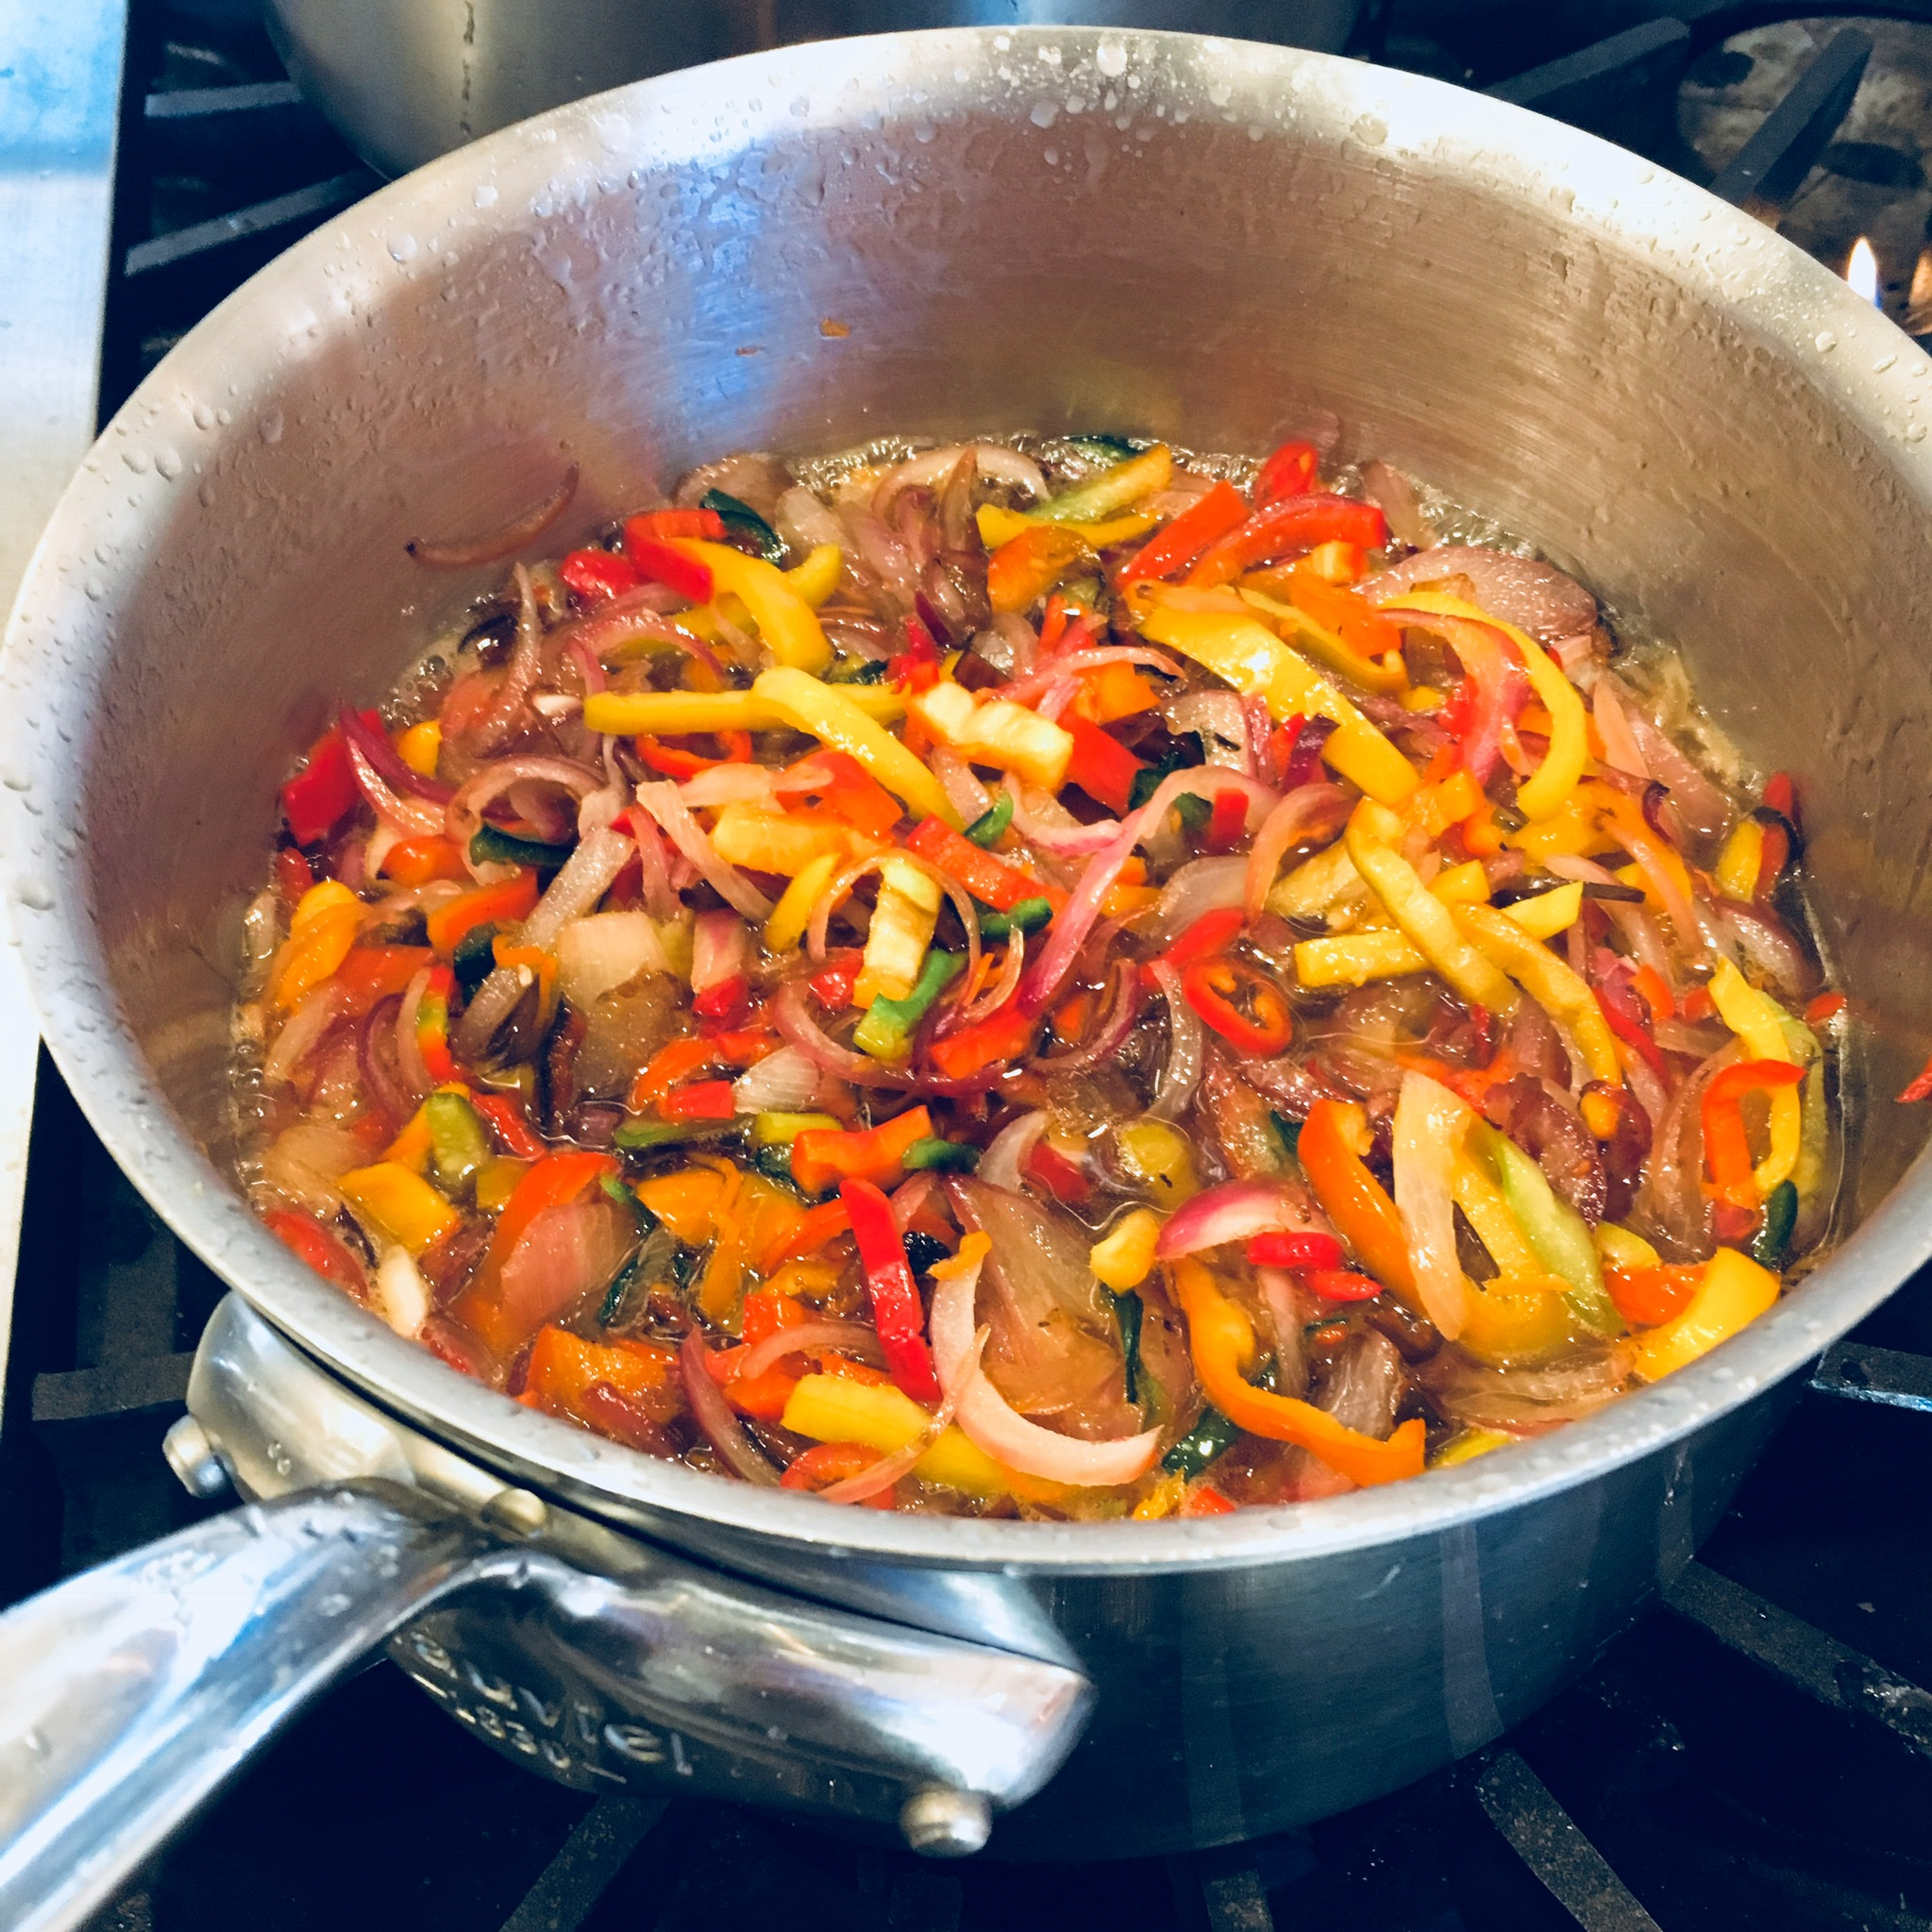 Sweet and spicy pepper jam chef vincent orchard kitchen.JPG